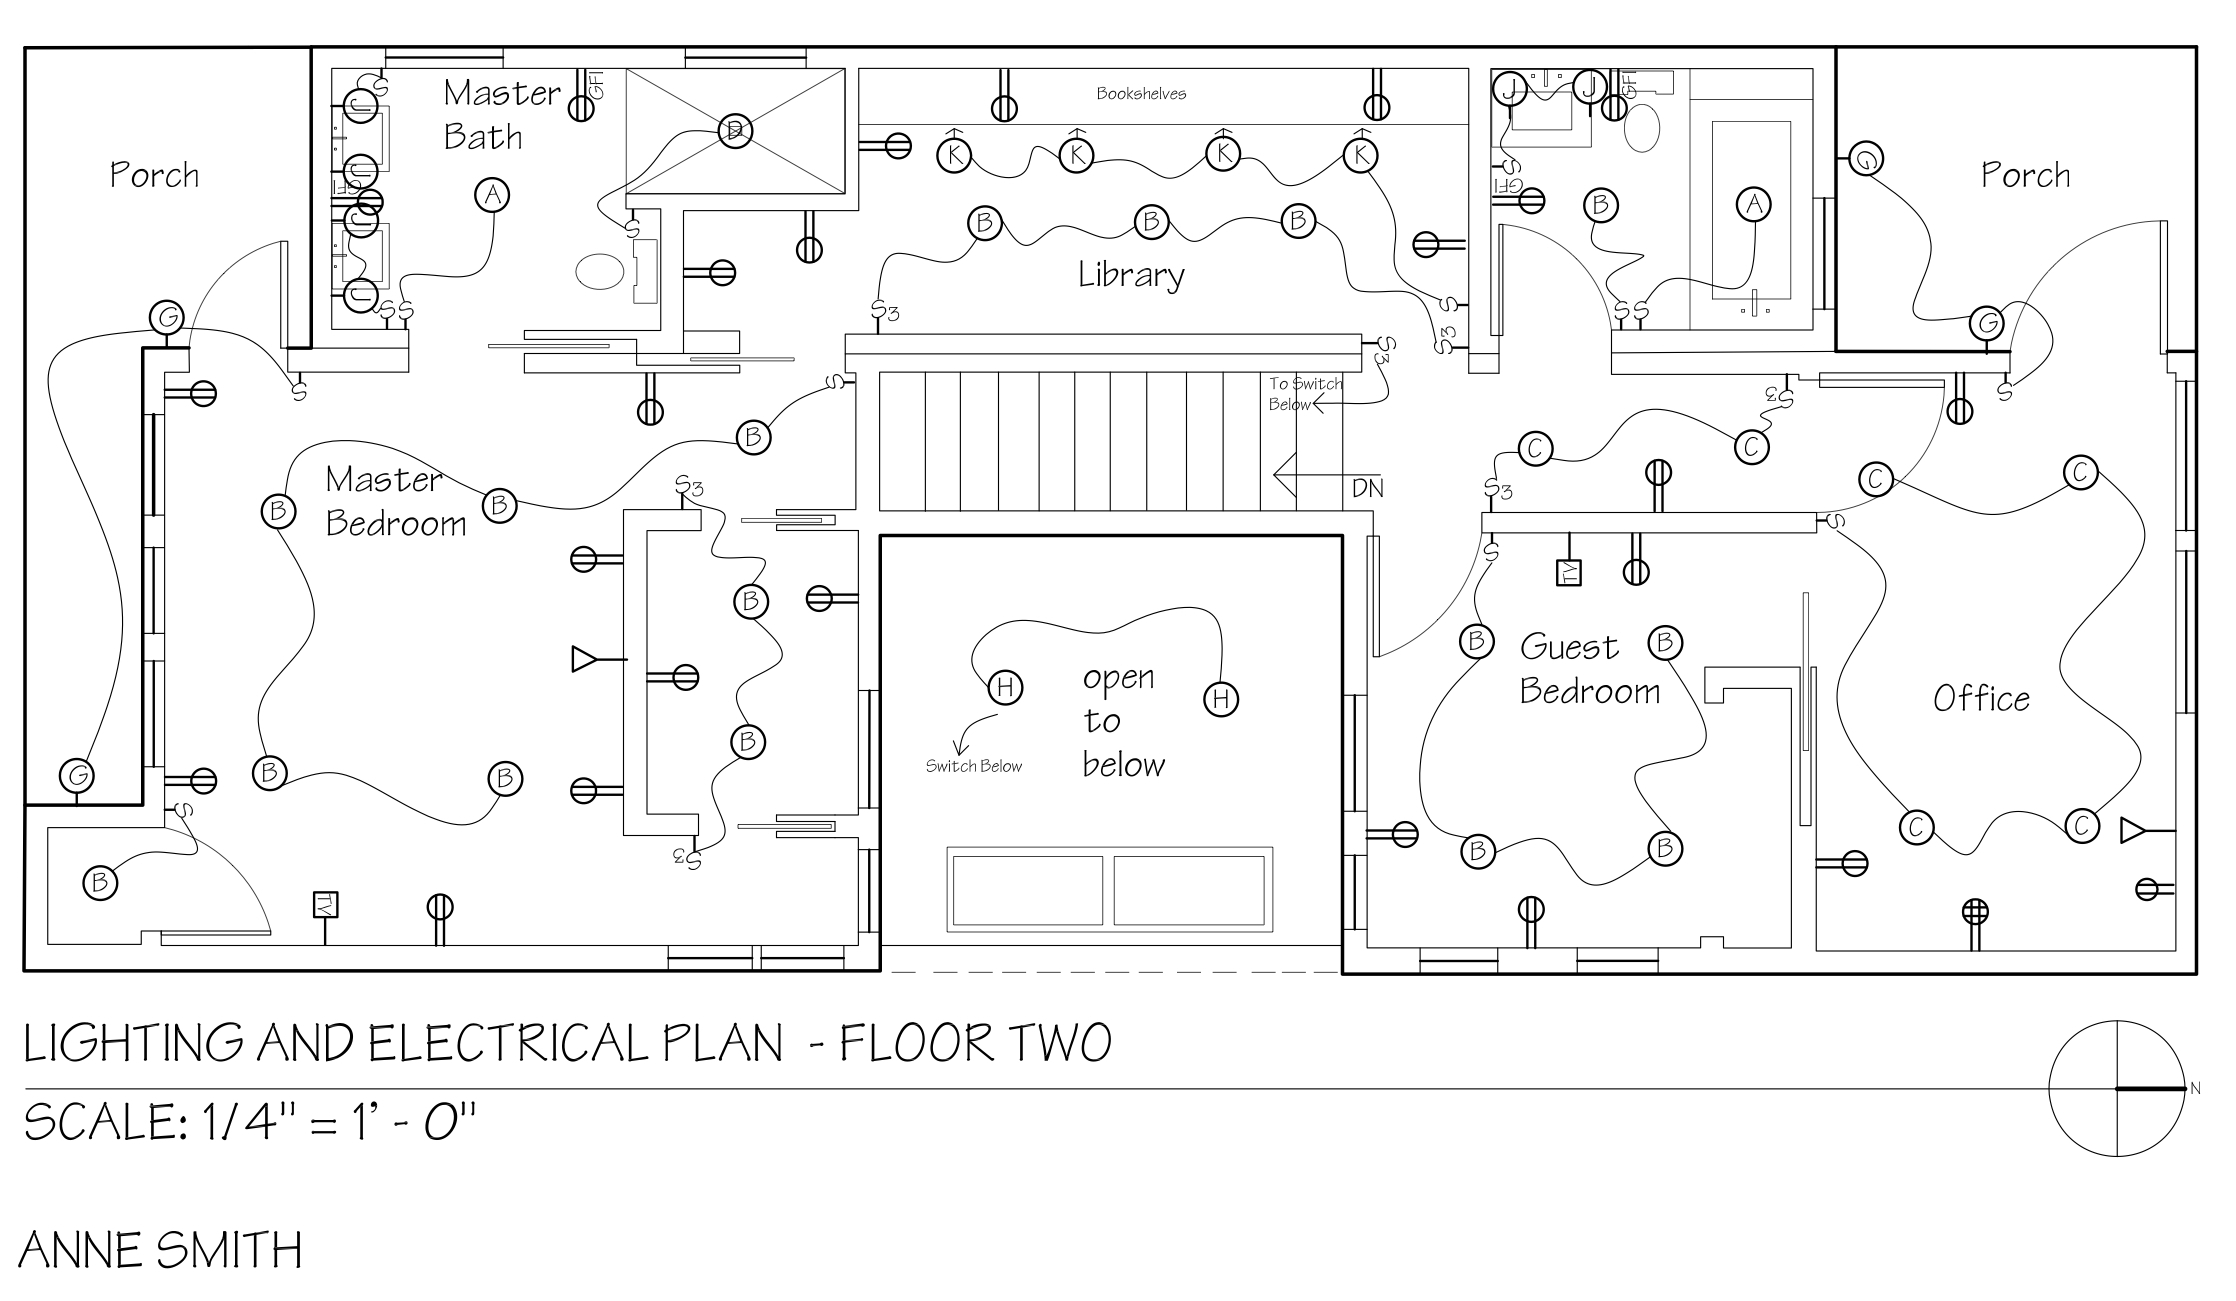 Home Electrical Wiring Diagram besides Lighting Device Symbols likewise Template Home Reflected Ceiling Plan together with Plumbing furthermore Kitchen Plumbing Systems. on bathroom electrical wiring layout